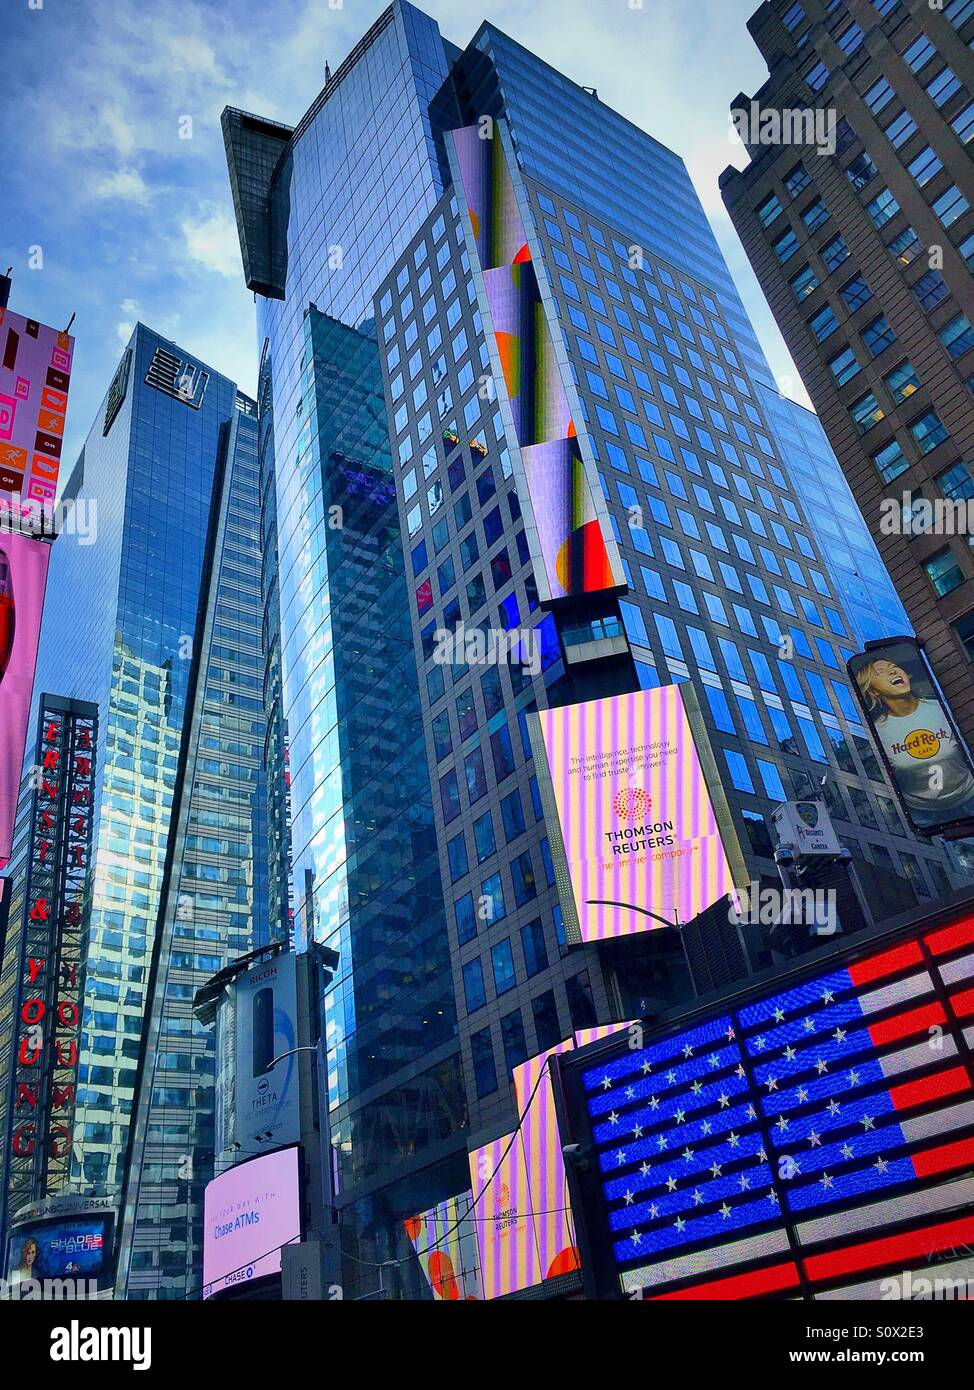 reuters building in times square stock photos reuters building in times square stock images. Black Bedroom Furniture Sets. Home Design Ideas